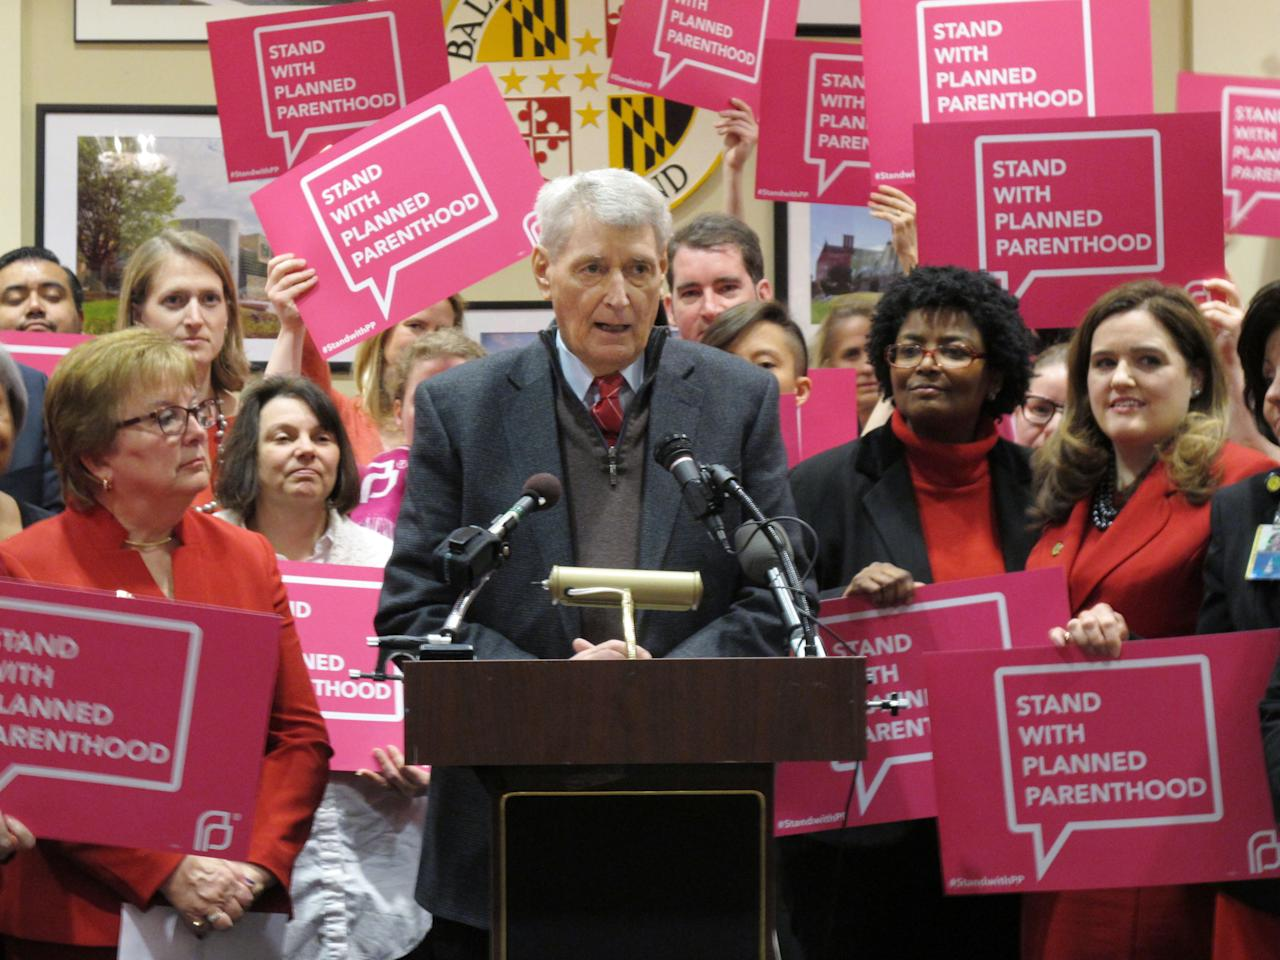 FILE - In this Wednesday, March 8, 2017, file photo, Maryland House Speaker Michael Busch speaks at a news conference in Annapolis, Md., in support of legislation to continue funding for services provided by Planned Parenthood. Democratic lawmakers in some states including Maryland are pressing ahead with efforts to protect birth control access, Planned Parenthood funding and abortion coverage in case they are jeopardized in the future. (AP Photo/Brian Witte, File)